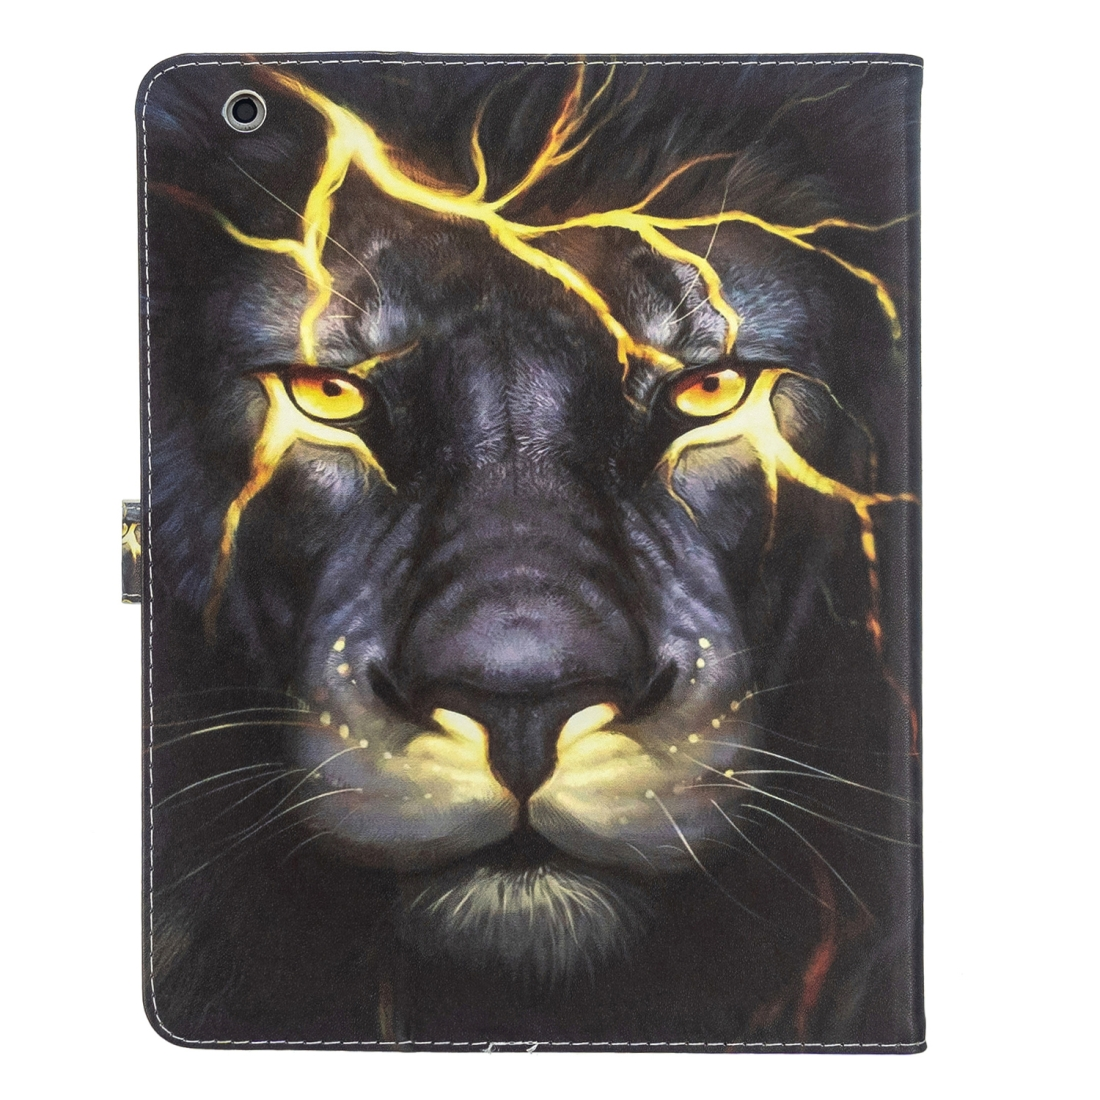 iPad 4th Generation Case Fits iPad 2,3,4, Leather With A Slim Profile (Lion)